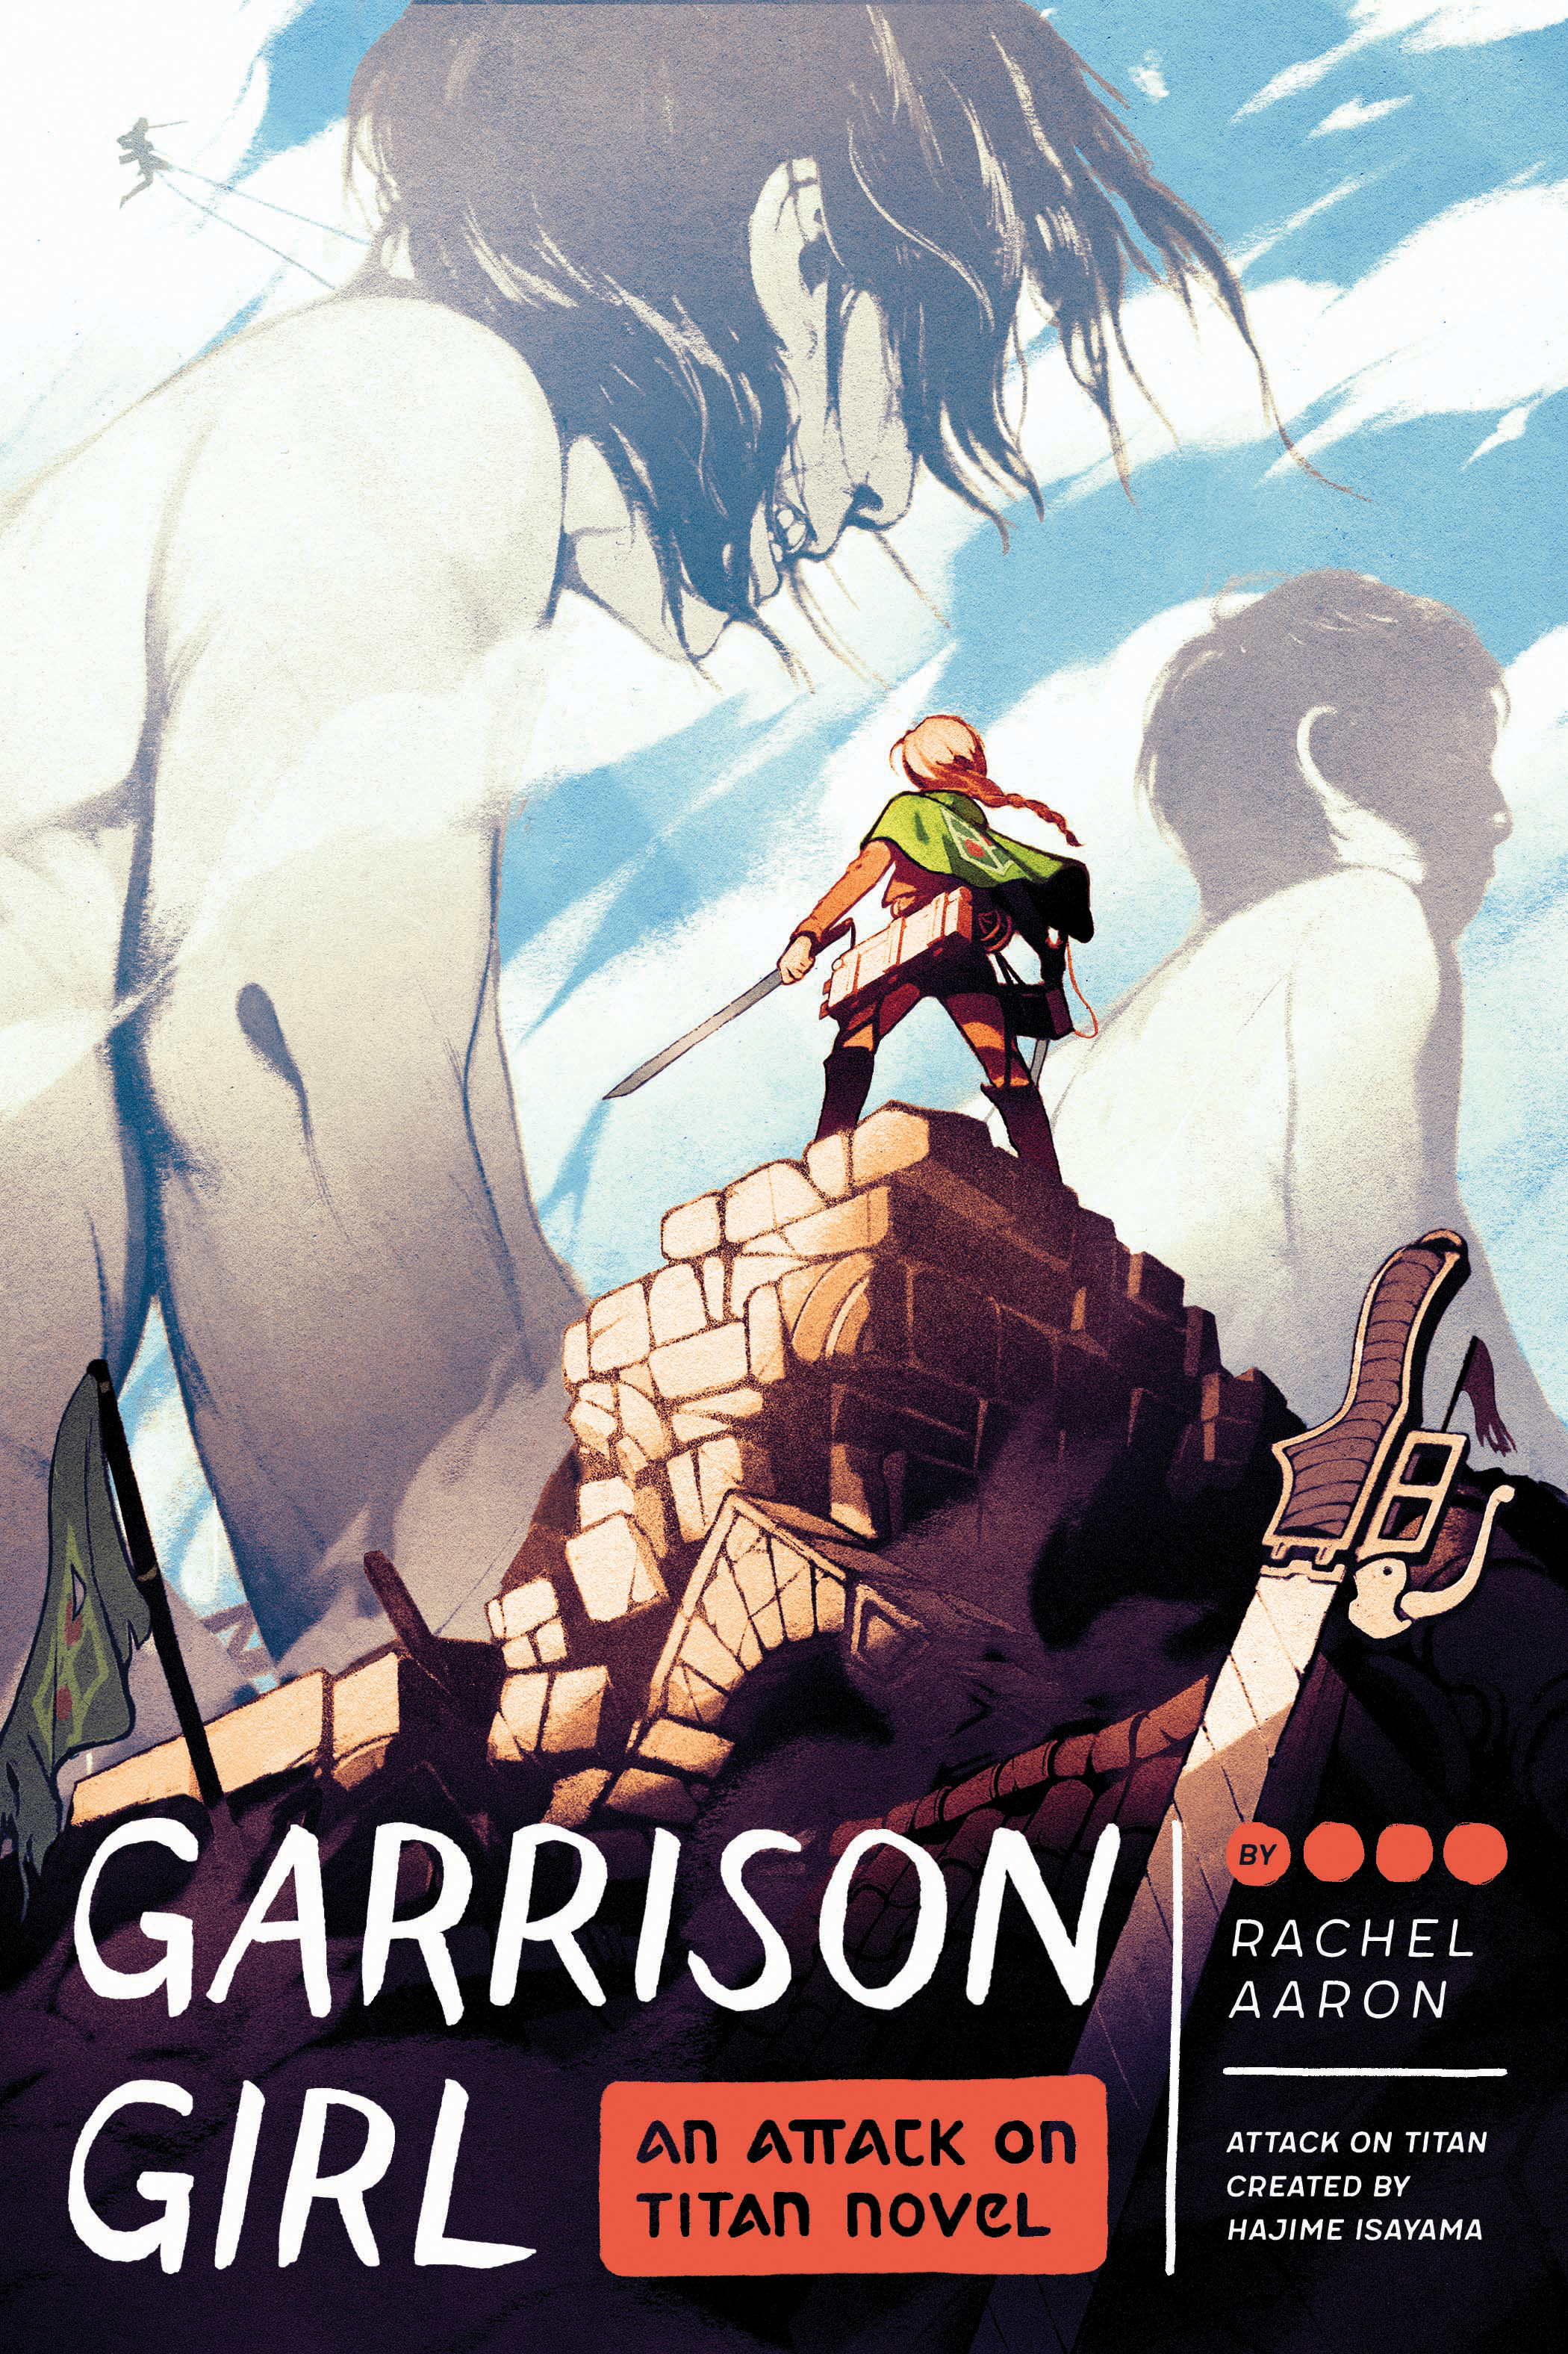 Read An Excerpt From Garrison Girl, The First Full-Length English